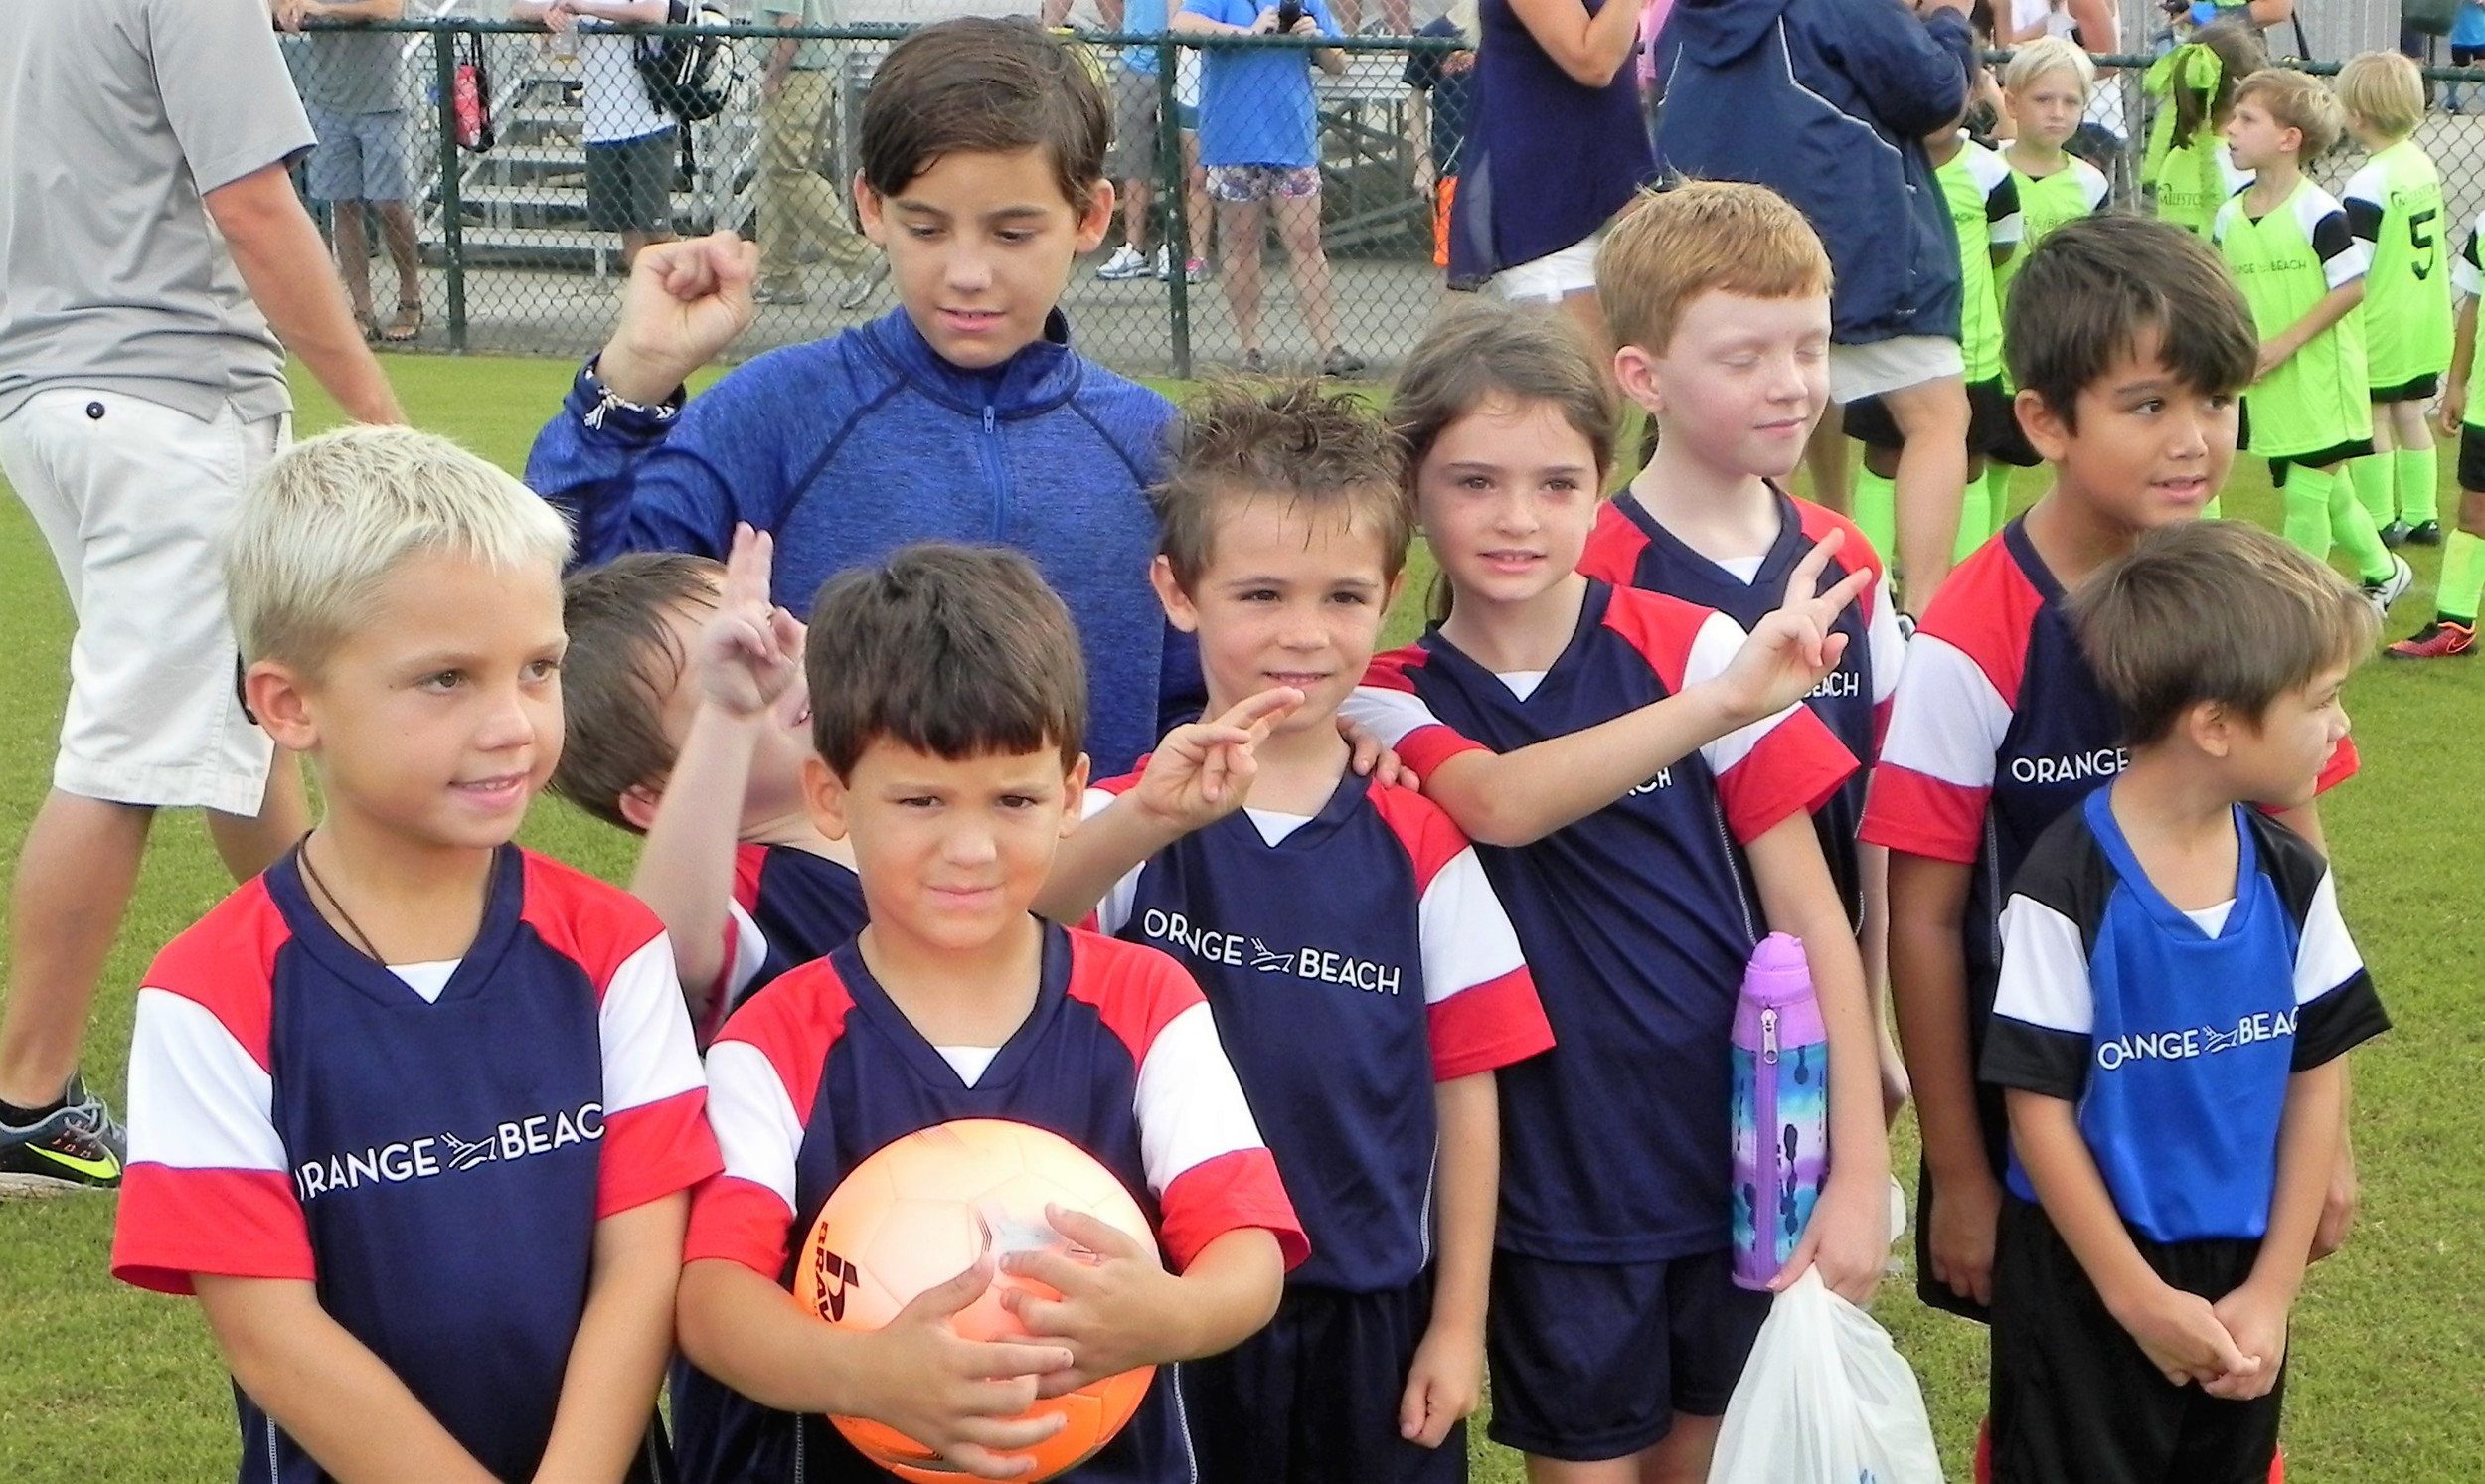 Scenes from 